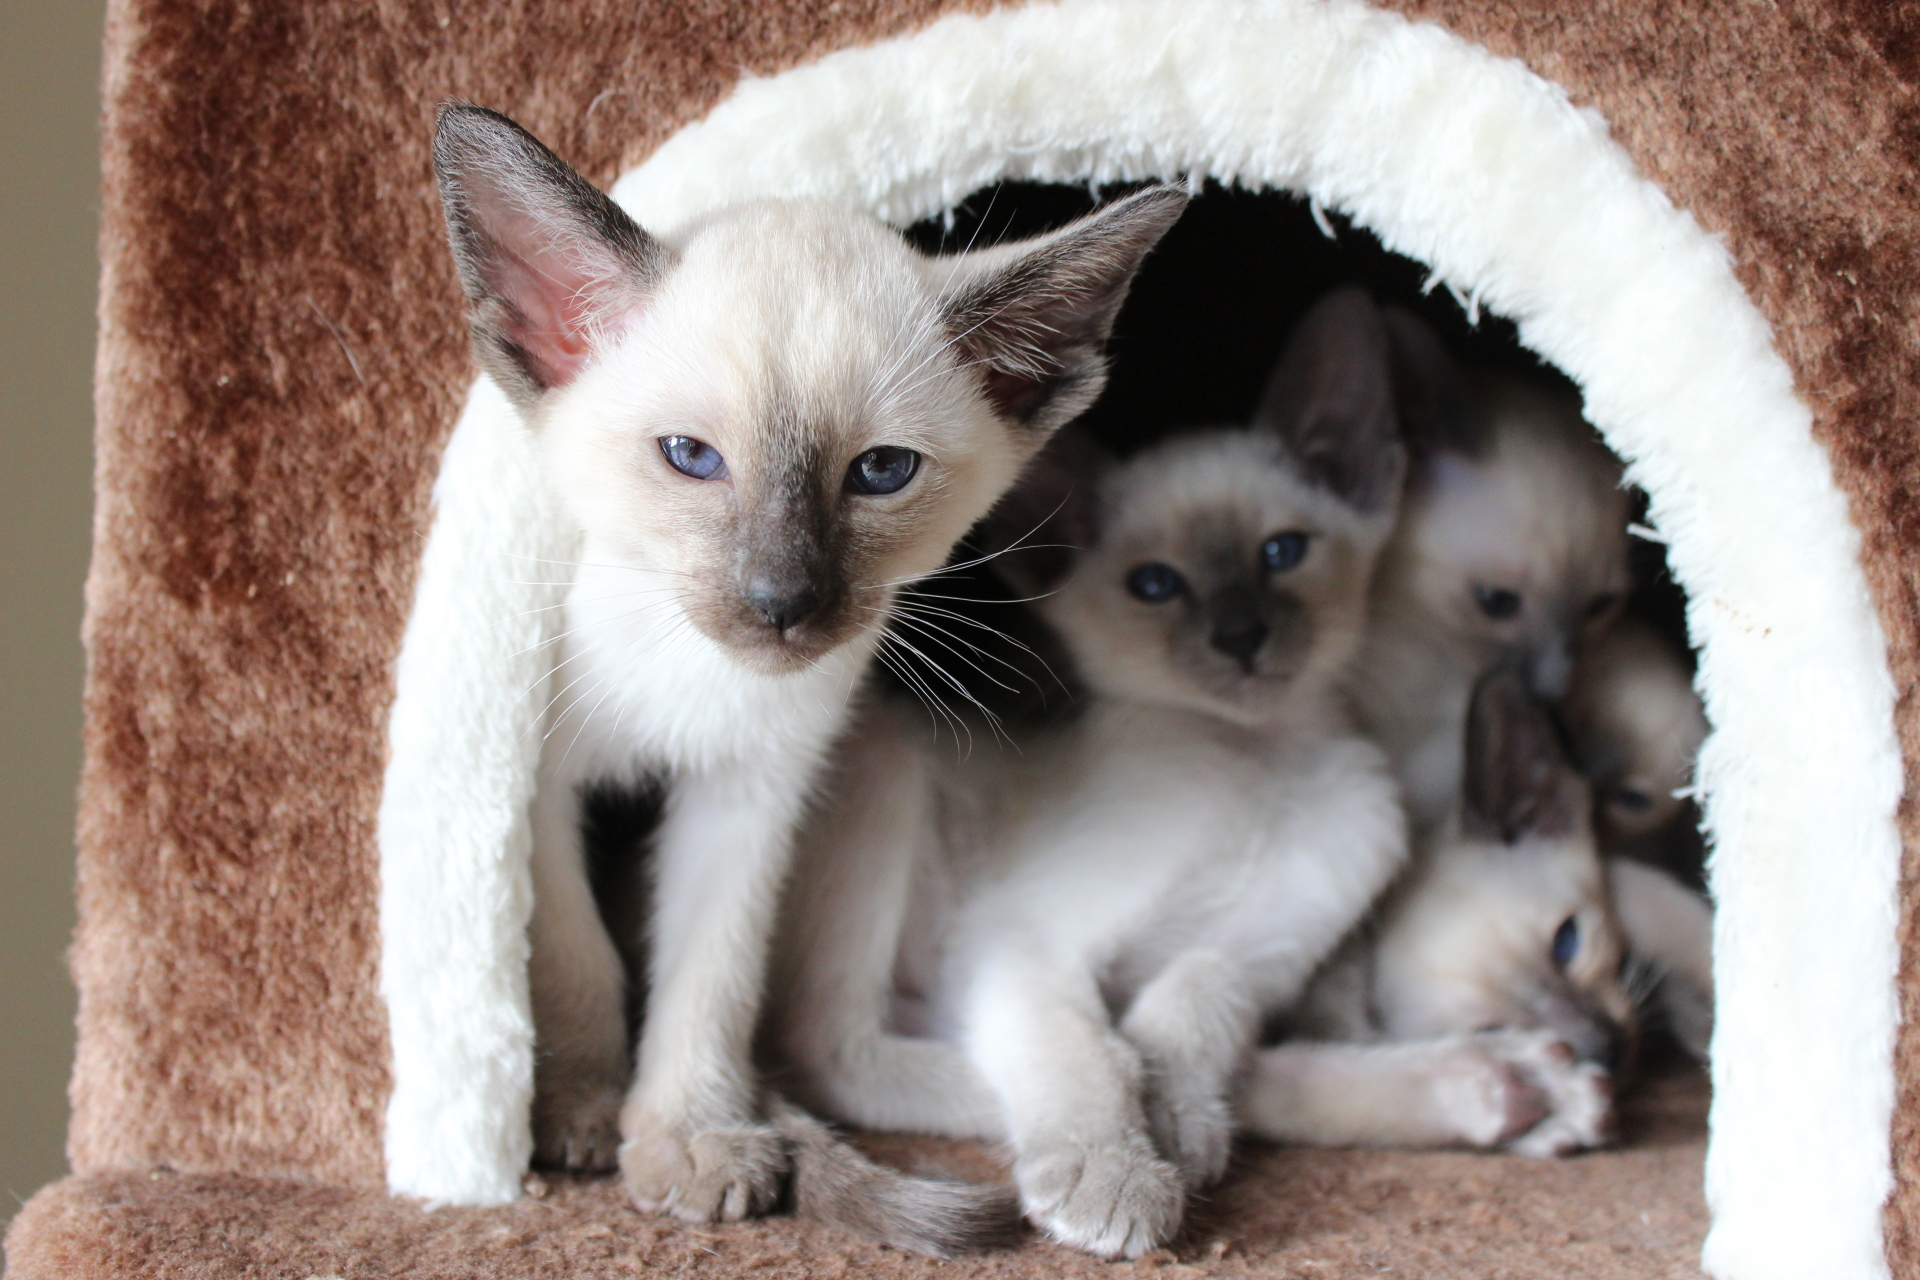 how many kittens in there